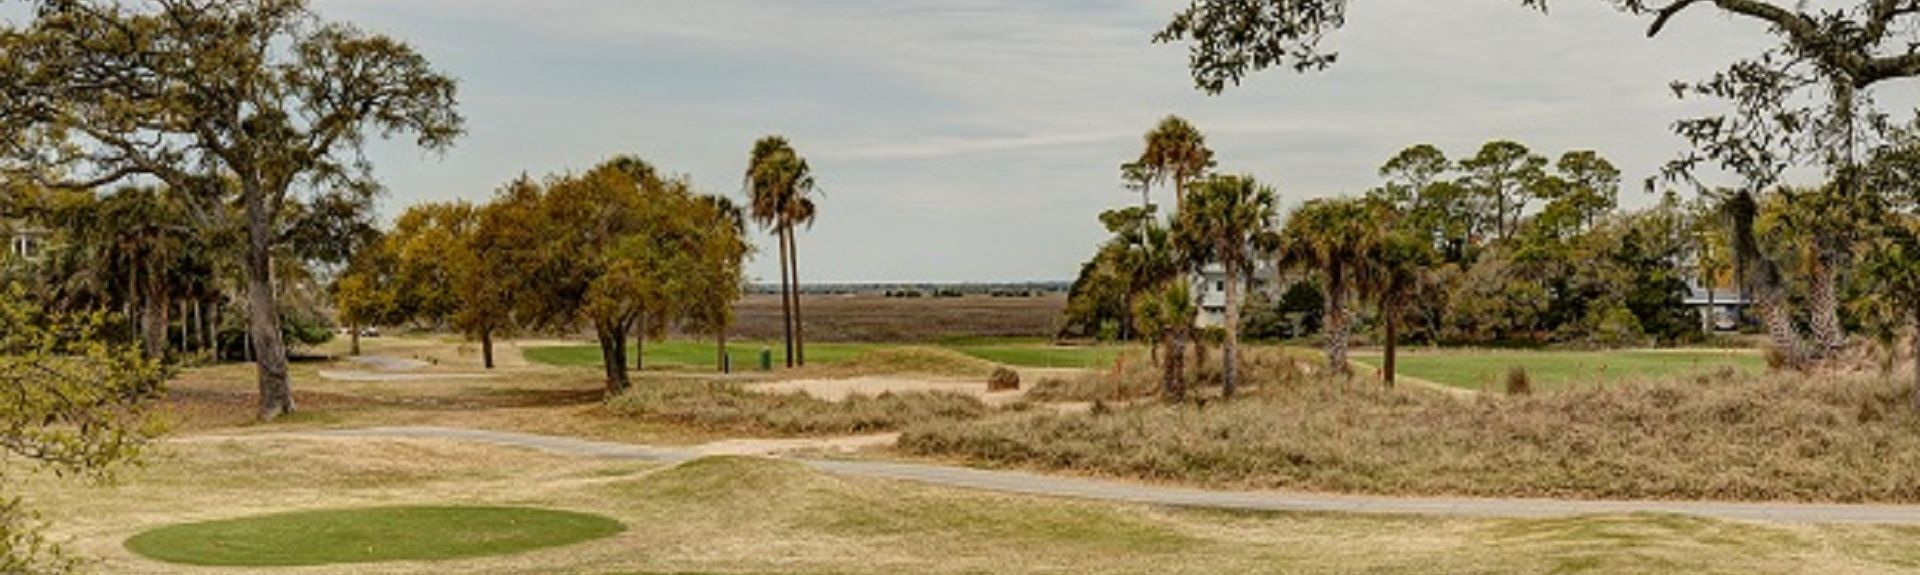 Twin Oaks, Wild Dunes, Isle of Palms, SC, USA